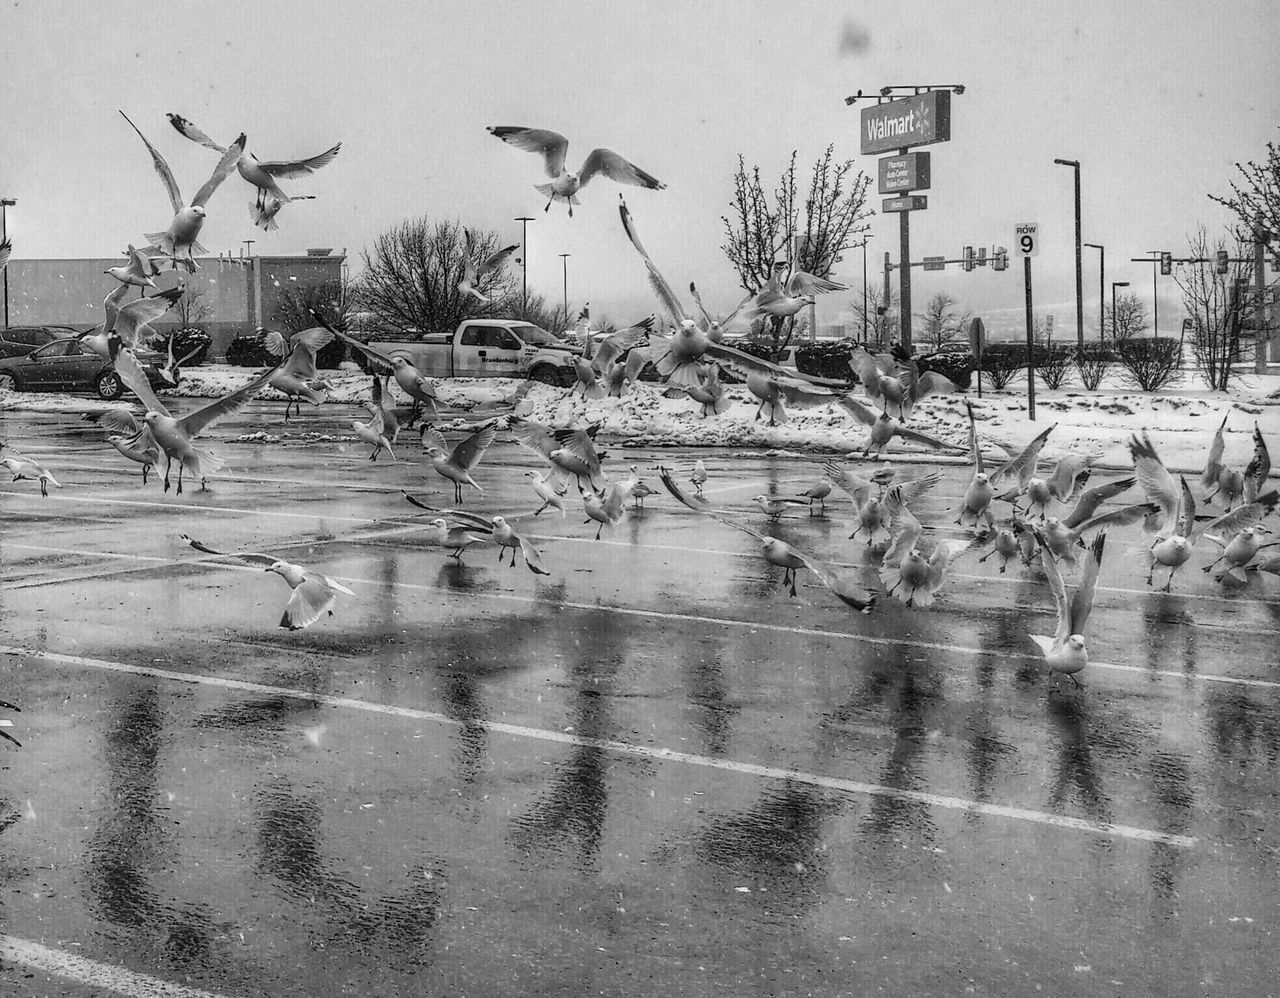 Seagulls Blackandwhite Birds In Flight Taking Photos Photography The Action Photographer - 2015 EyeEm Awards Action Shot  birds of a feather stick together living the dream Jft